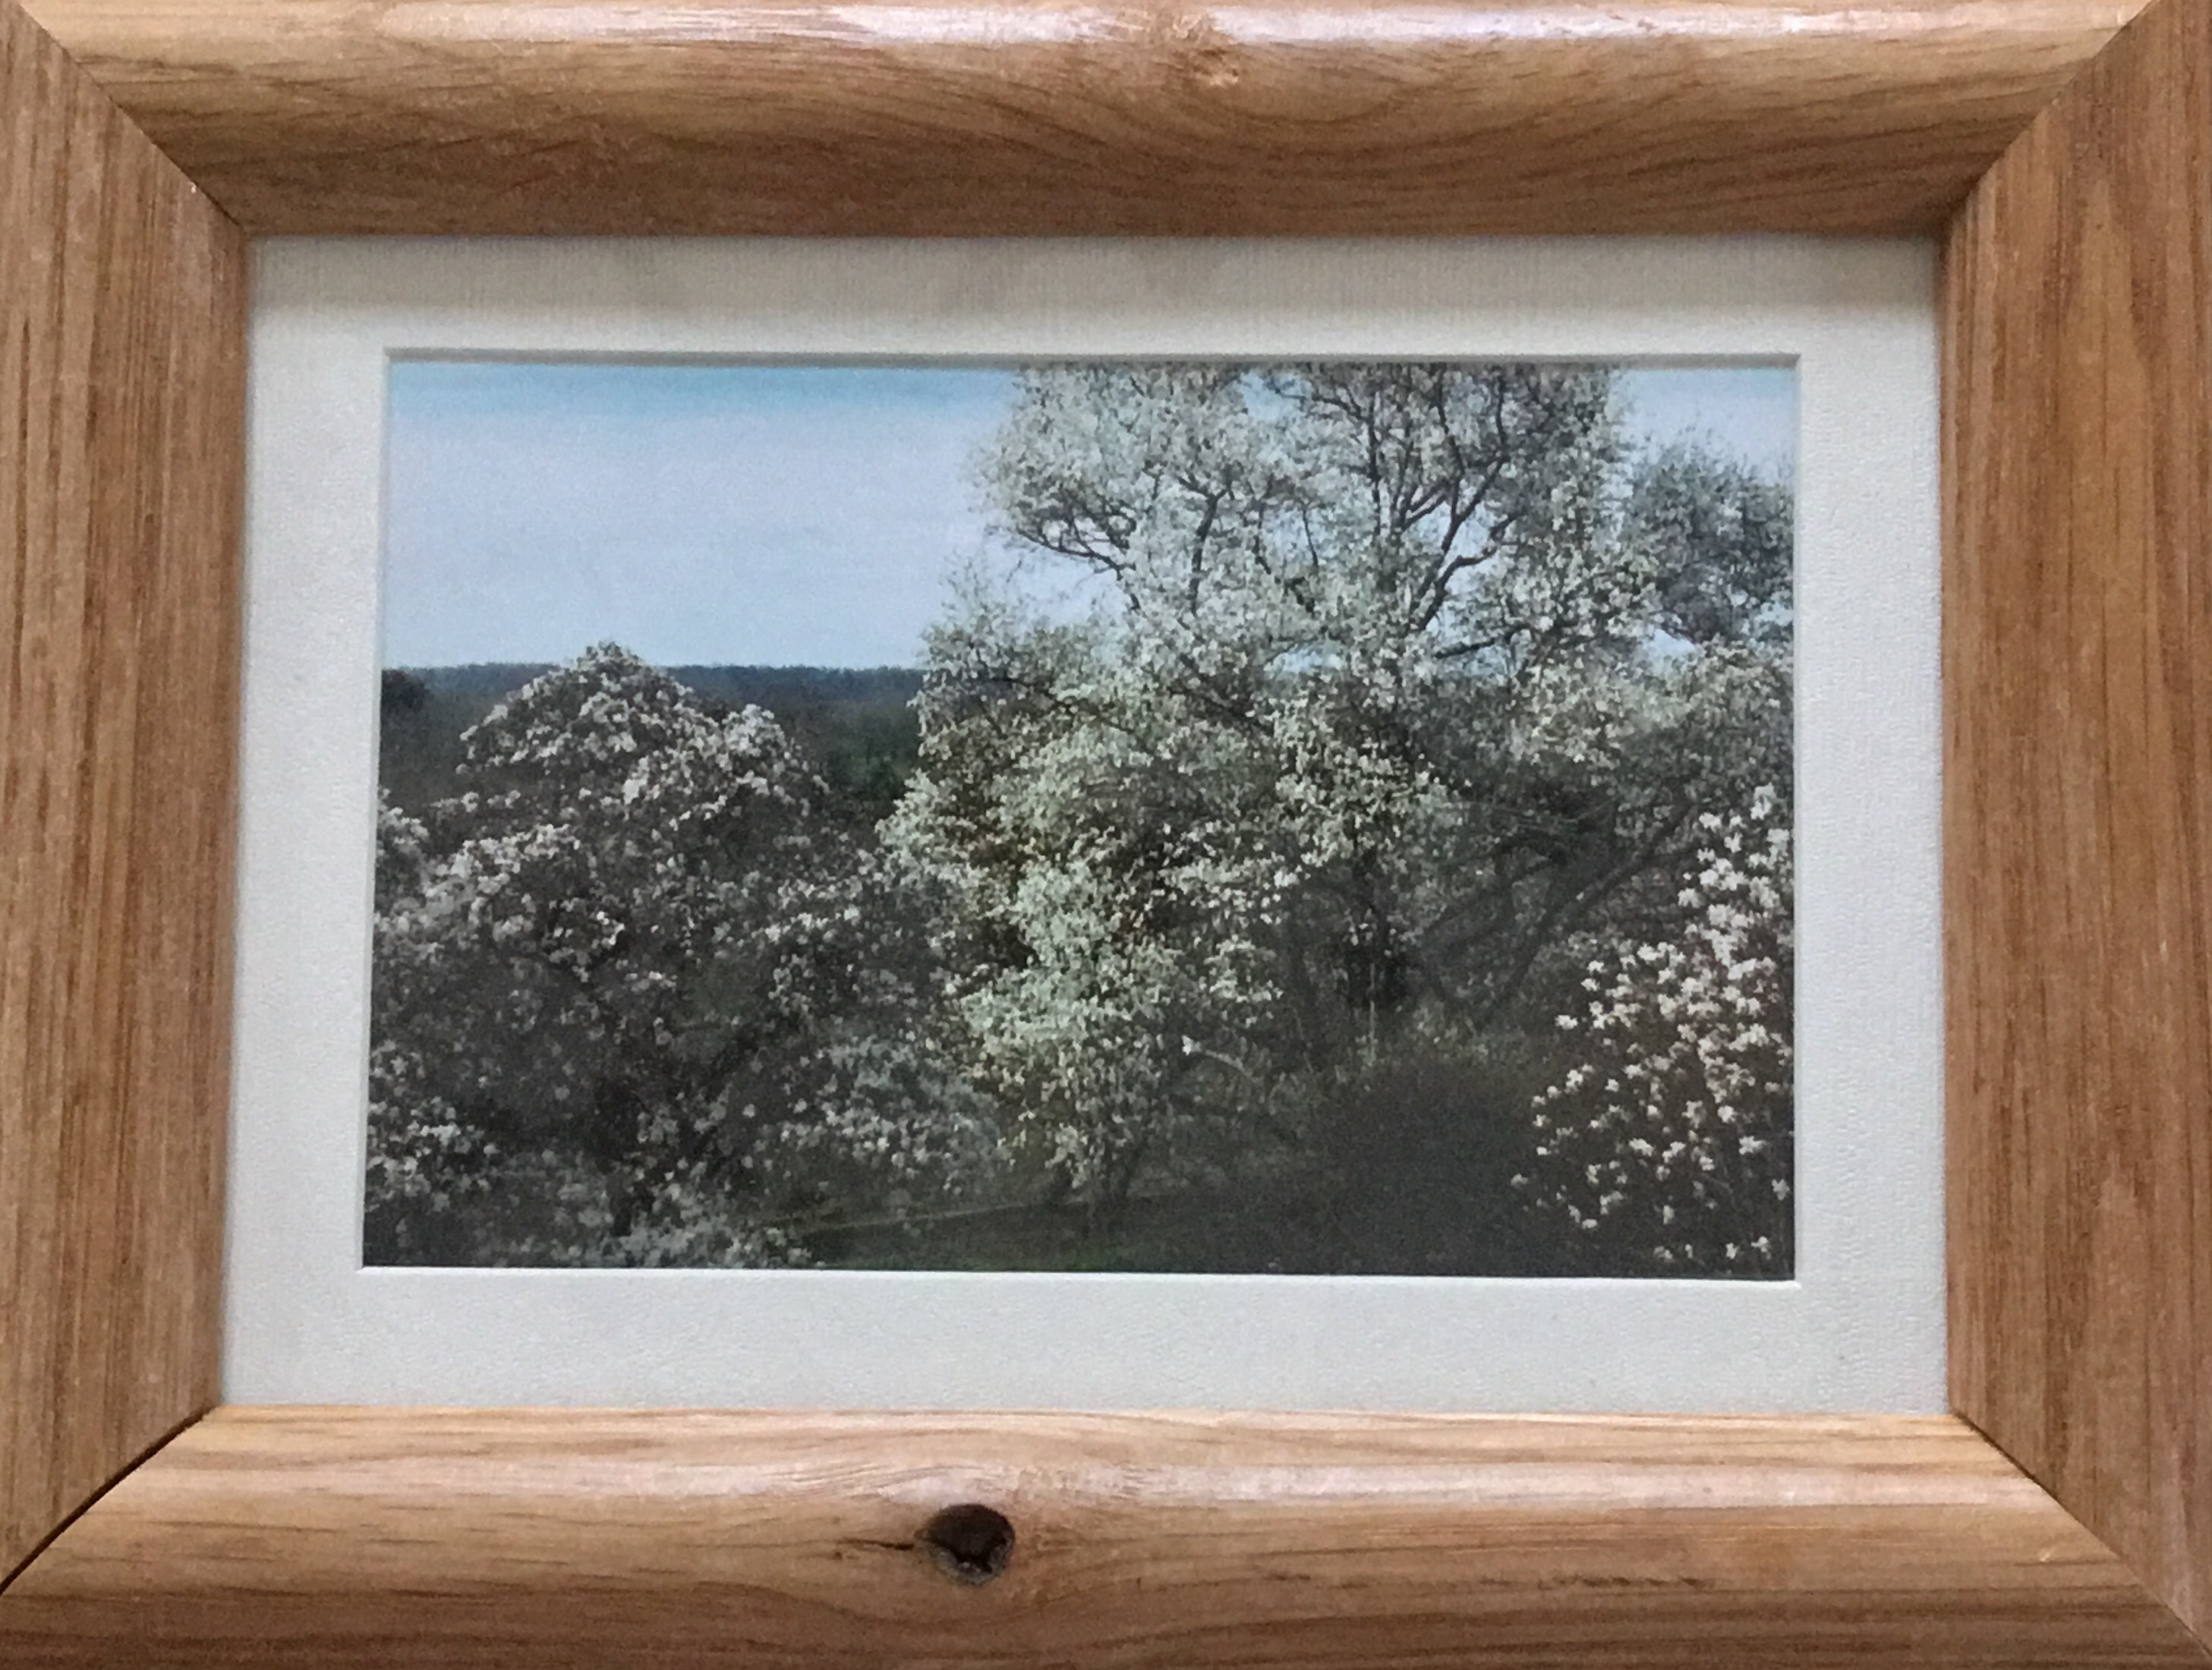 Framed Photograph, Flowering Trees